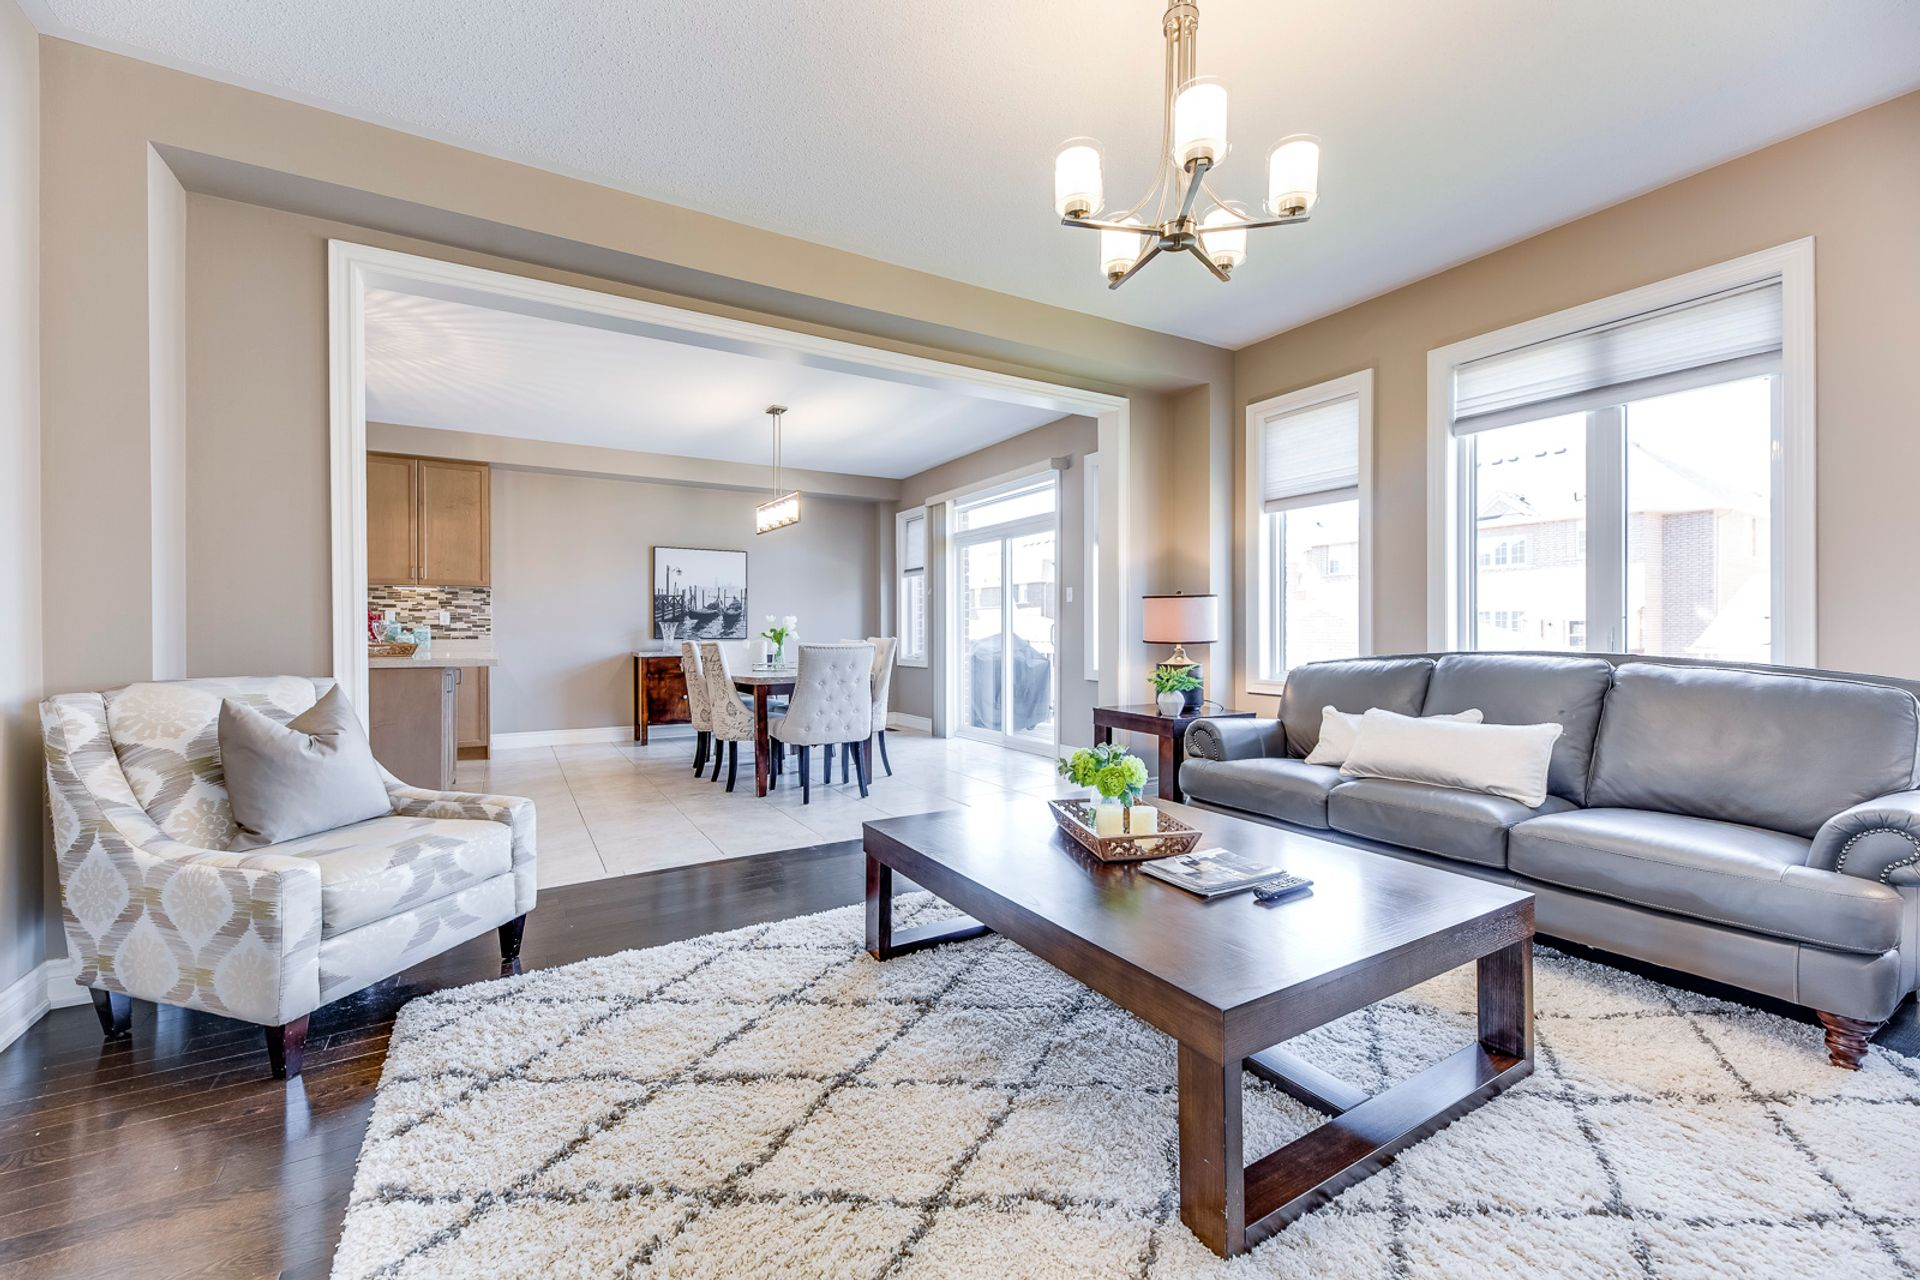 mls-17 at 5480 Meadowcrest Avenue, Churchill Meadows, Mississauga